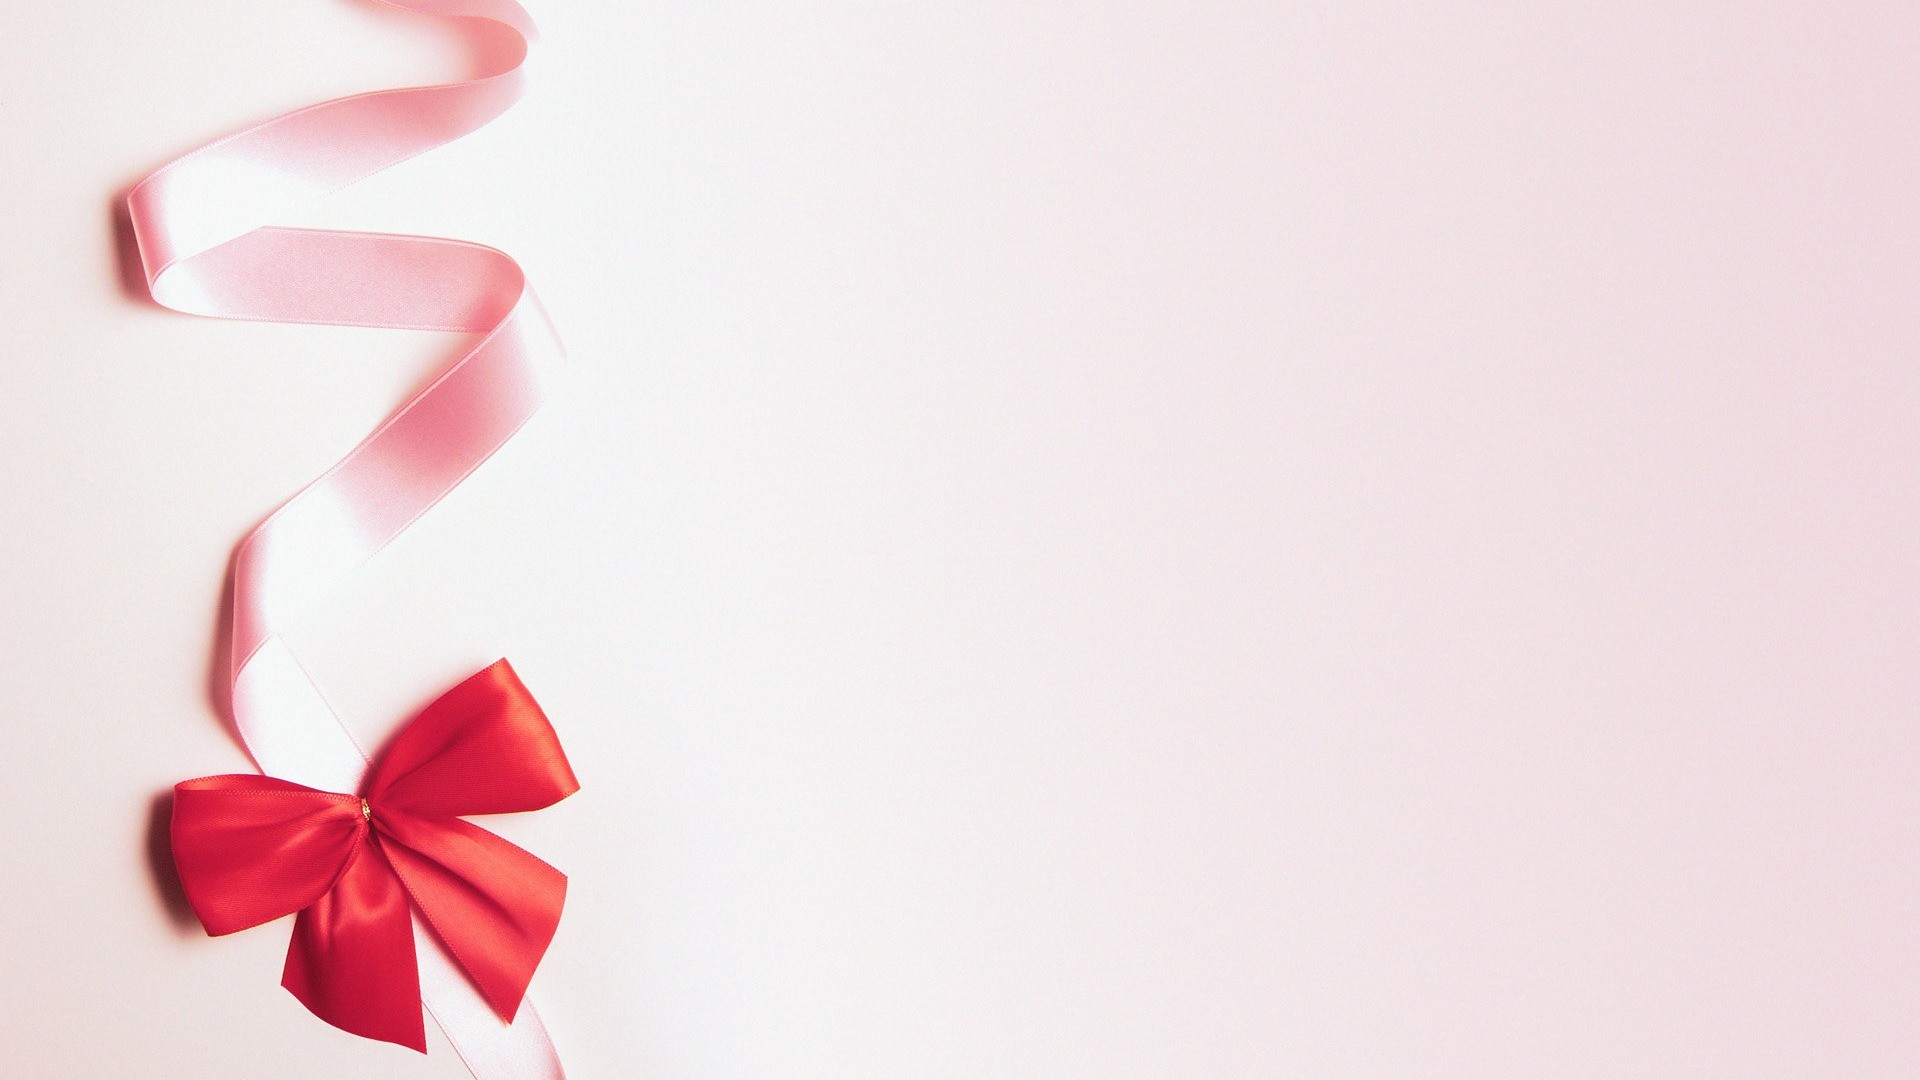 1920x1080 Related Wallpapers from Paris Tourist Attractions. Cute Pink Ribbon